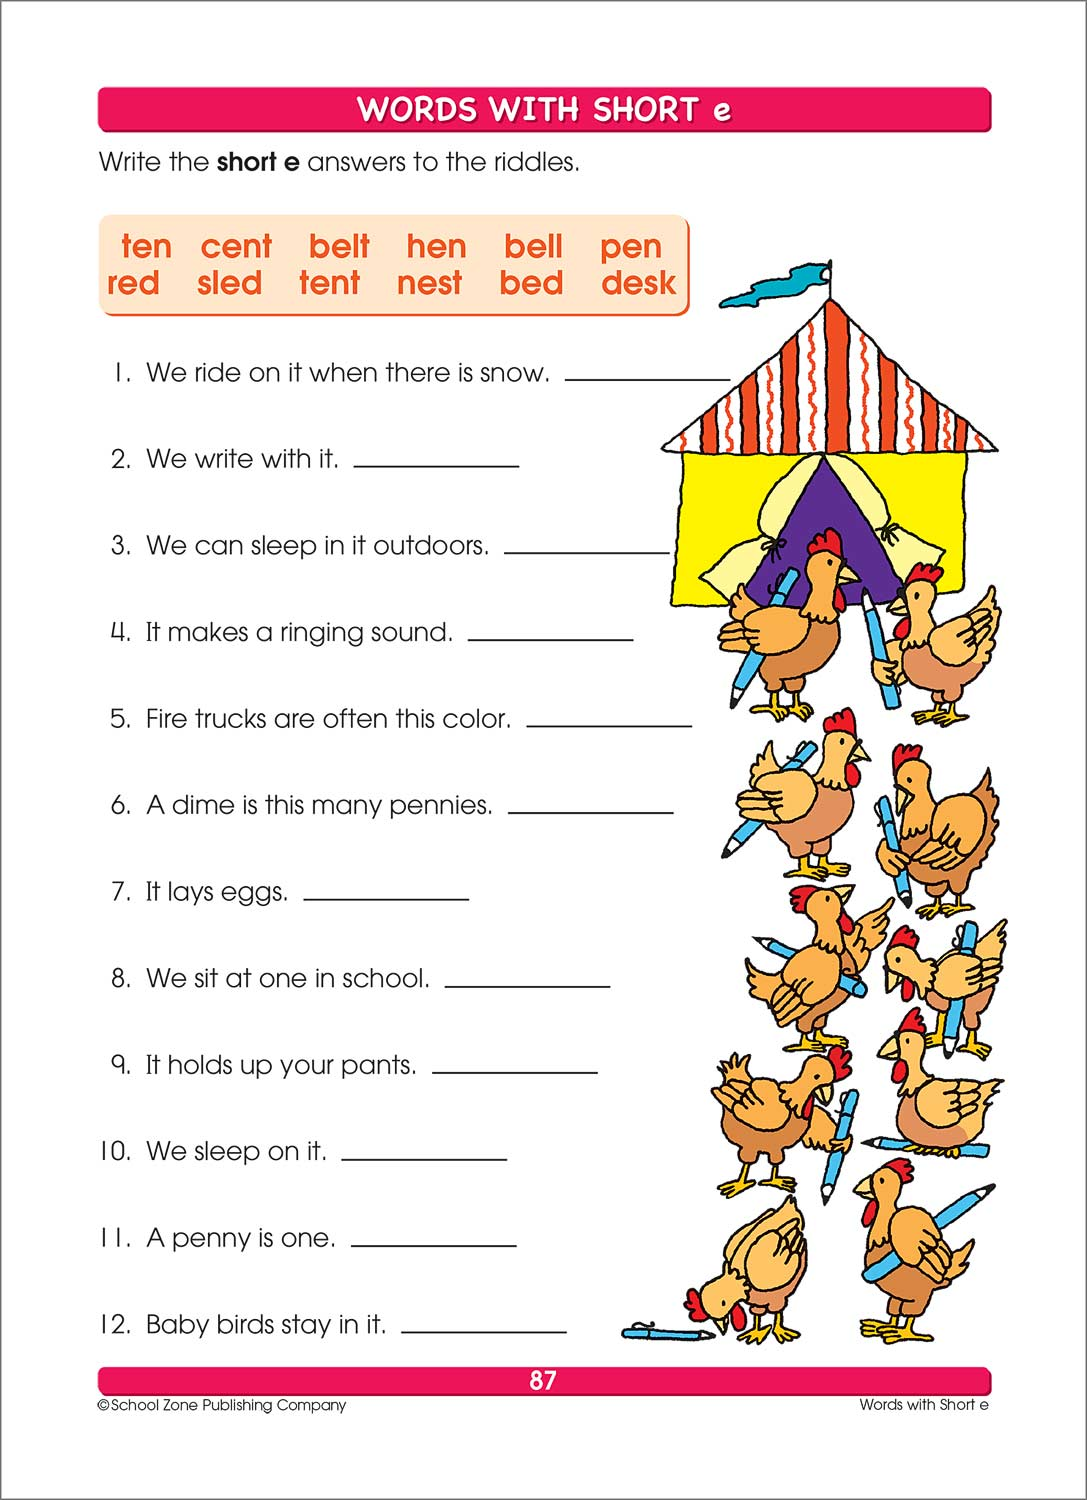 Workbooks big third grade workbook : Big Spelling 1-3 Workbook - Fun Stuff Toys